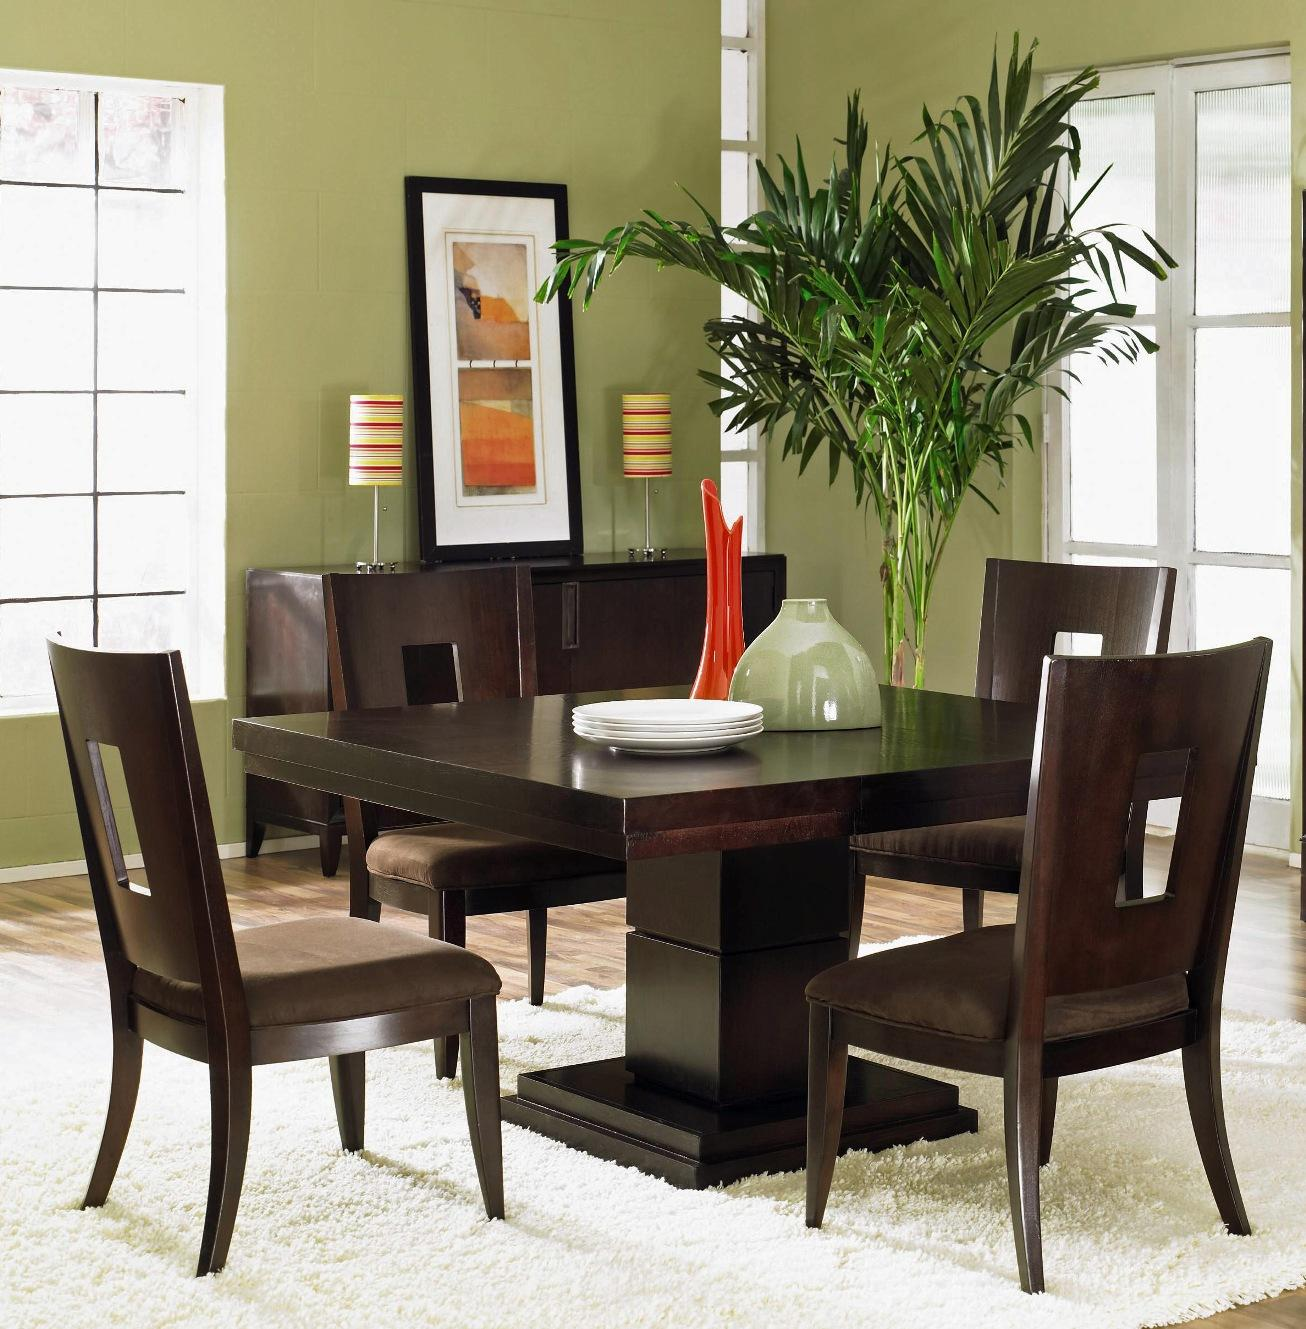 dining room furniture styles photo - 1